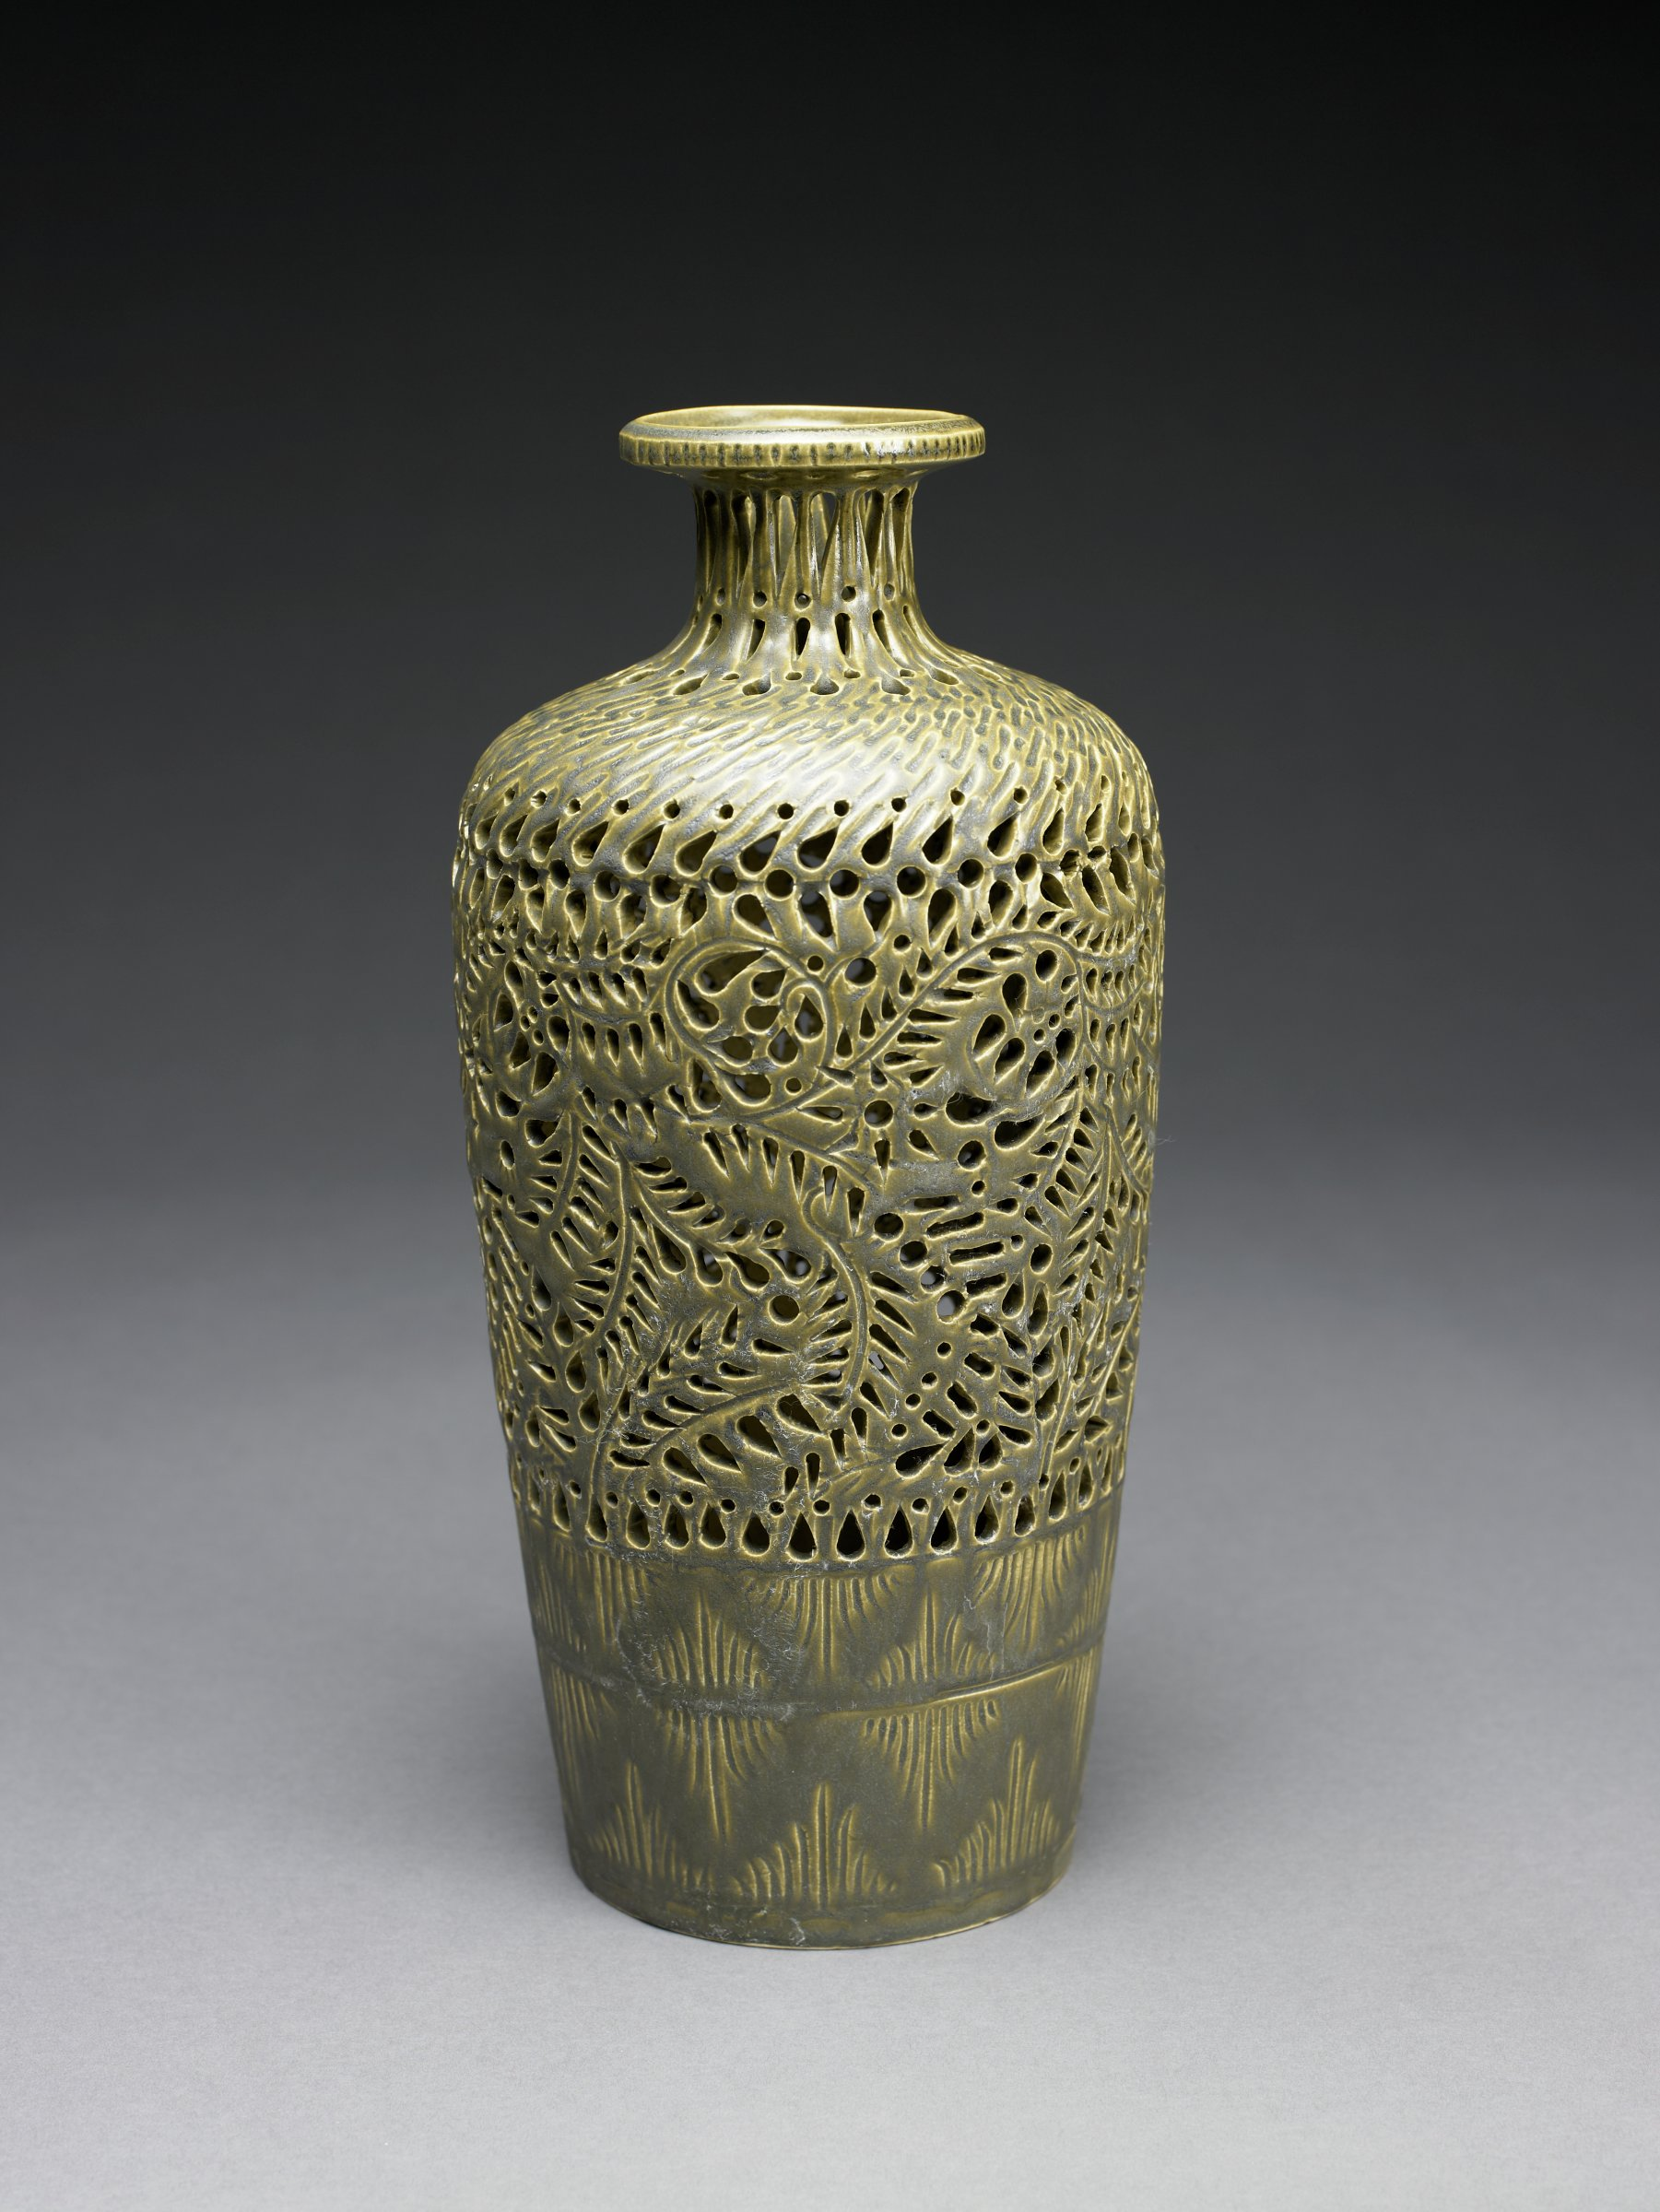 Tall, bottle-shaped bone china vase covered with a khaki-greenish glaze, the lower body incised and glazed in a chevron pattern, the upper two-thirds of the body and narrow neck pierced in a pattern of swirling foliate motifs, the lip slightly flared.